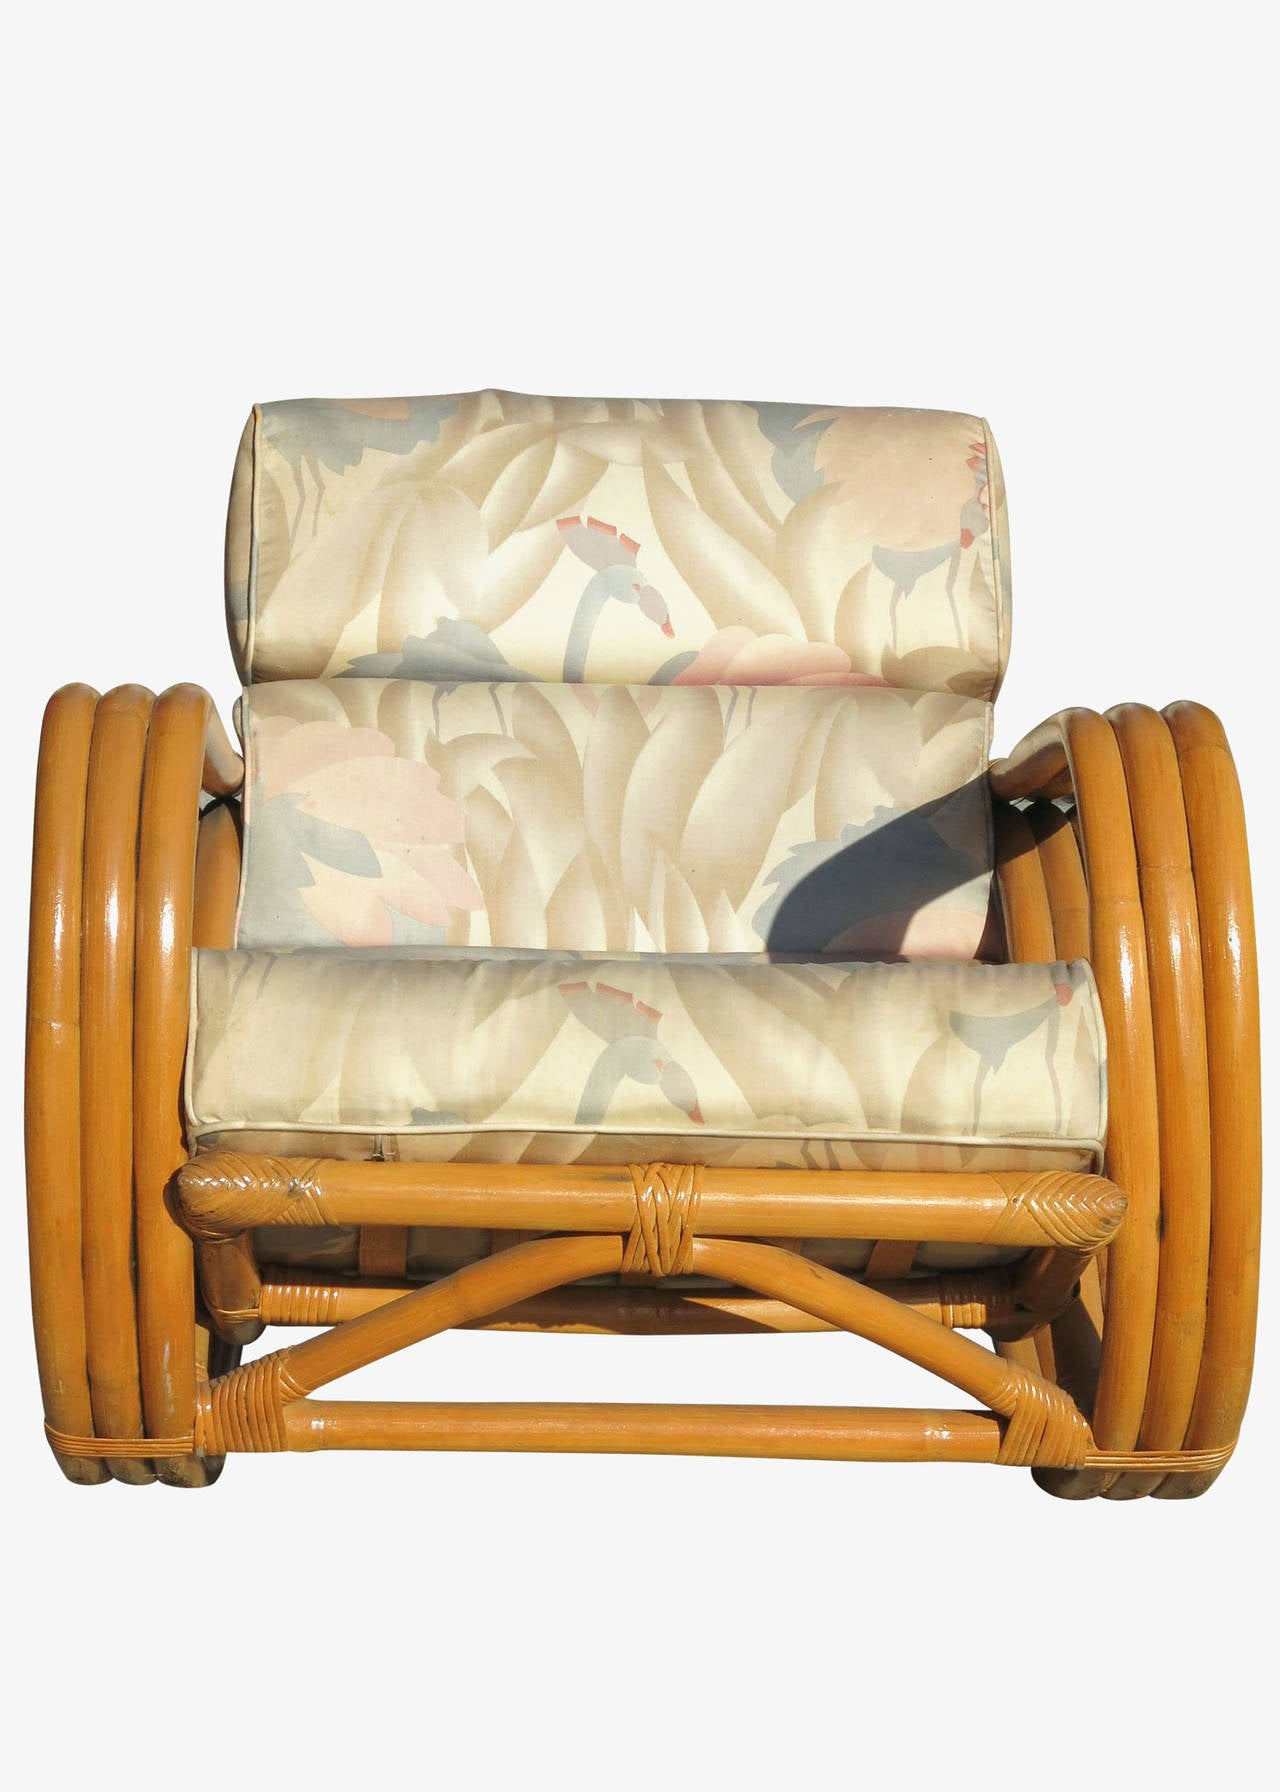 pretzel arm rattan rocking chair with ottoman for sale at 1stdibs